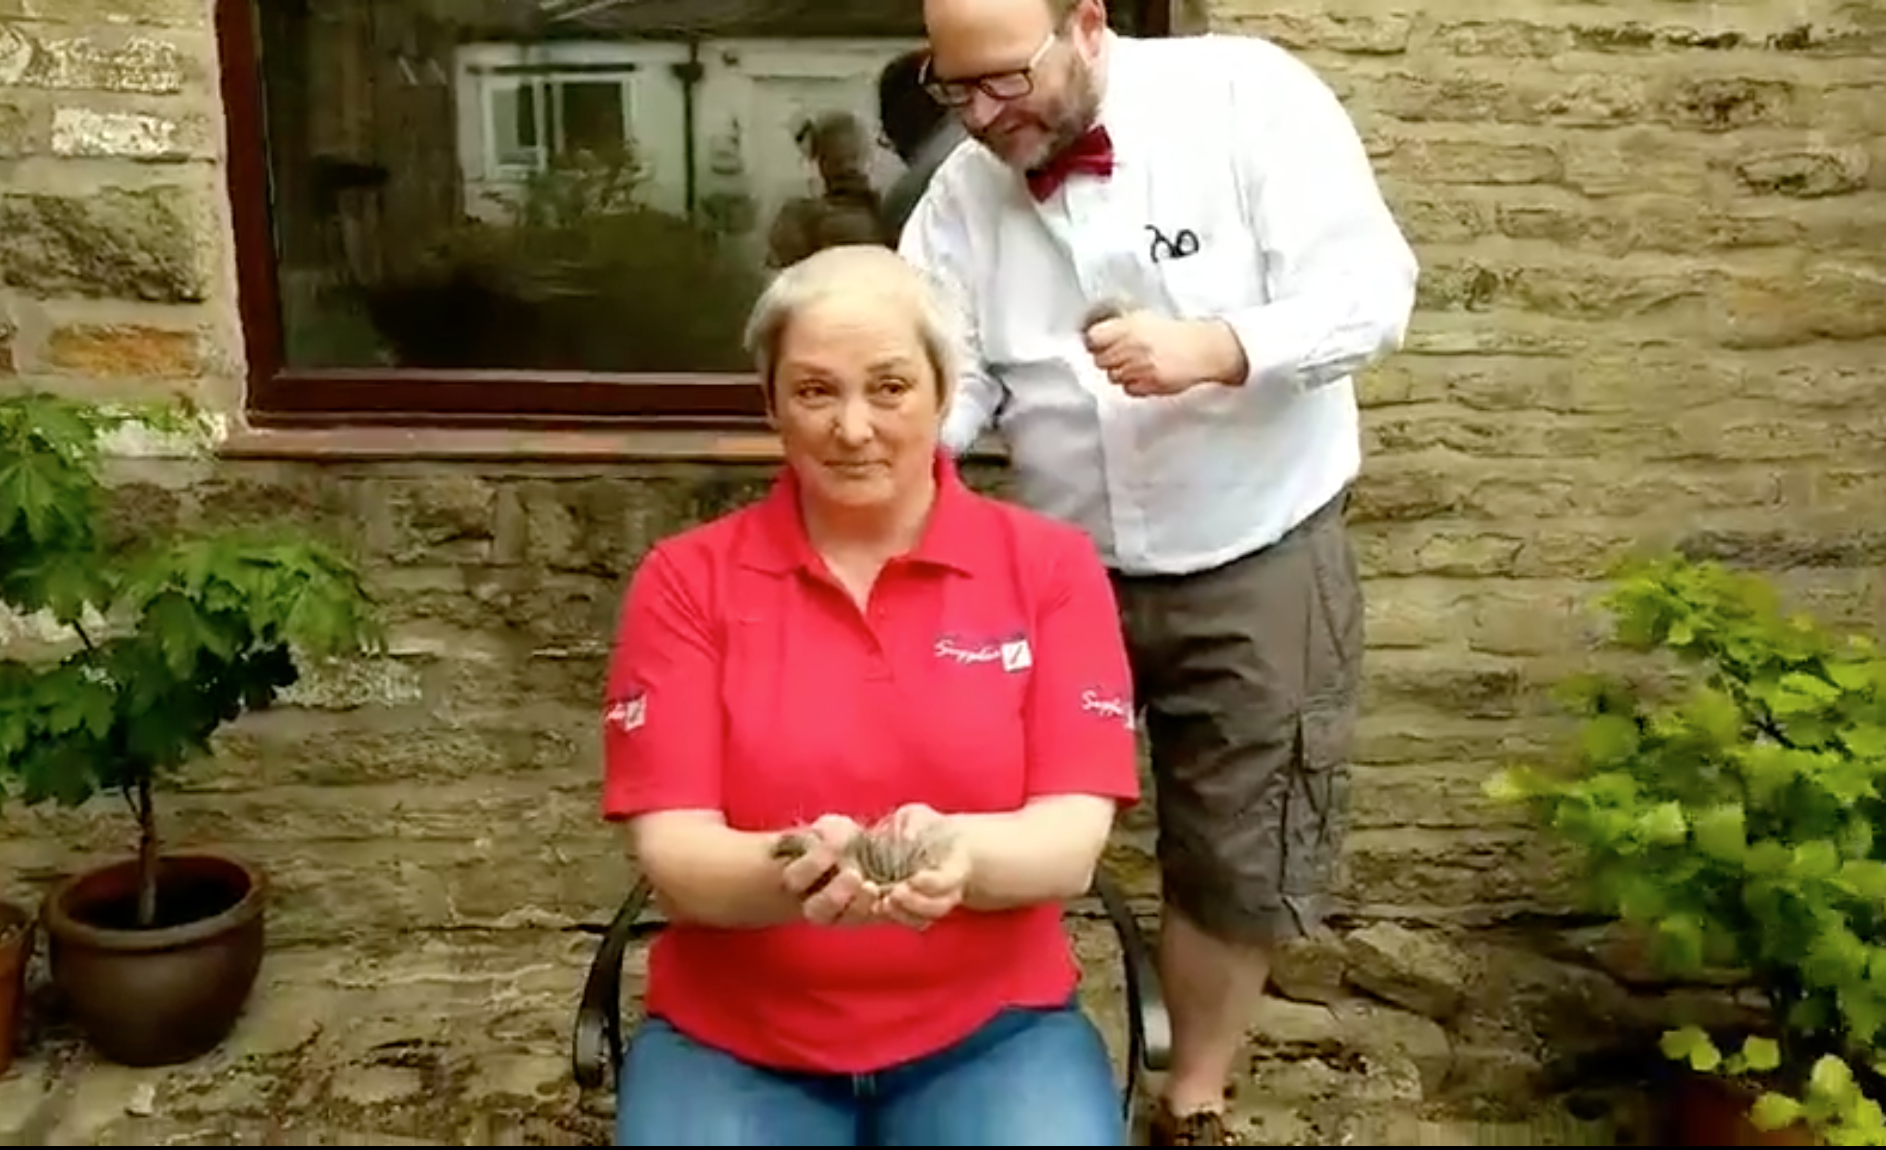 Above: Sarah Laker, owner of Marple Stationery Supplies braving the shave from her husband, live on Facebook video, to raise money for Mellor Country House, a much-loved local charity.